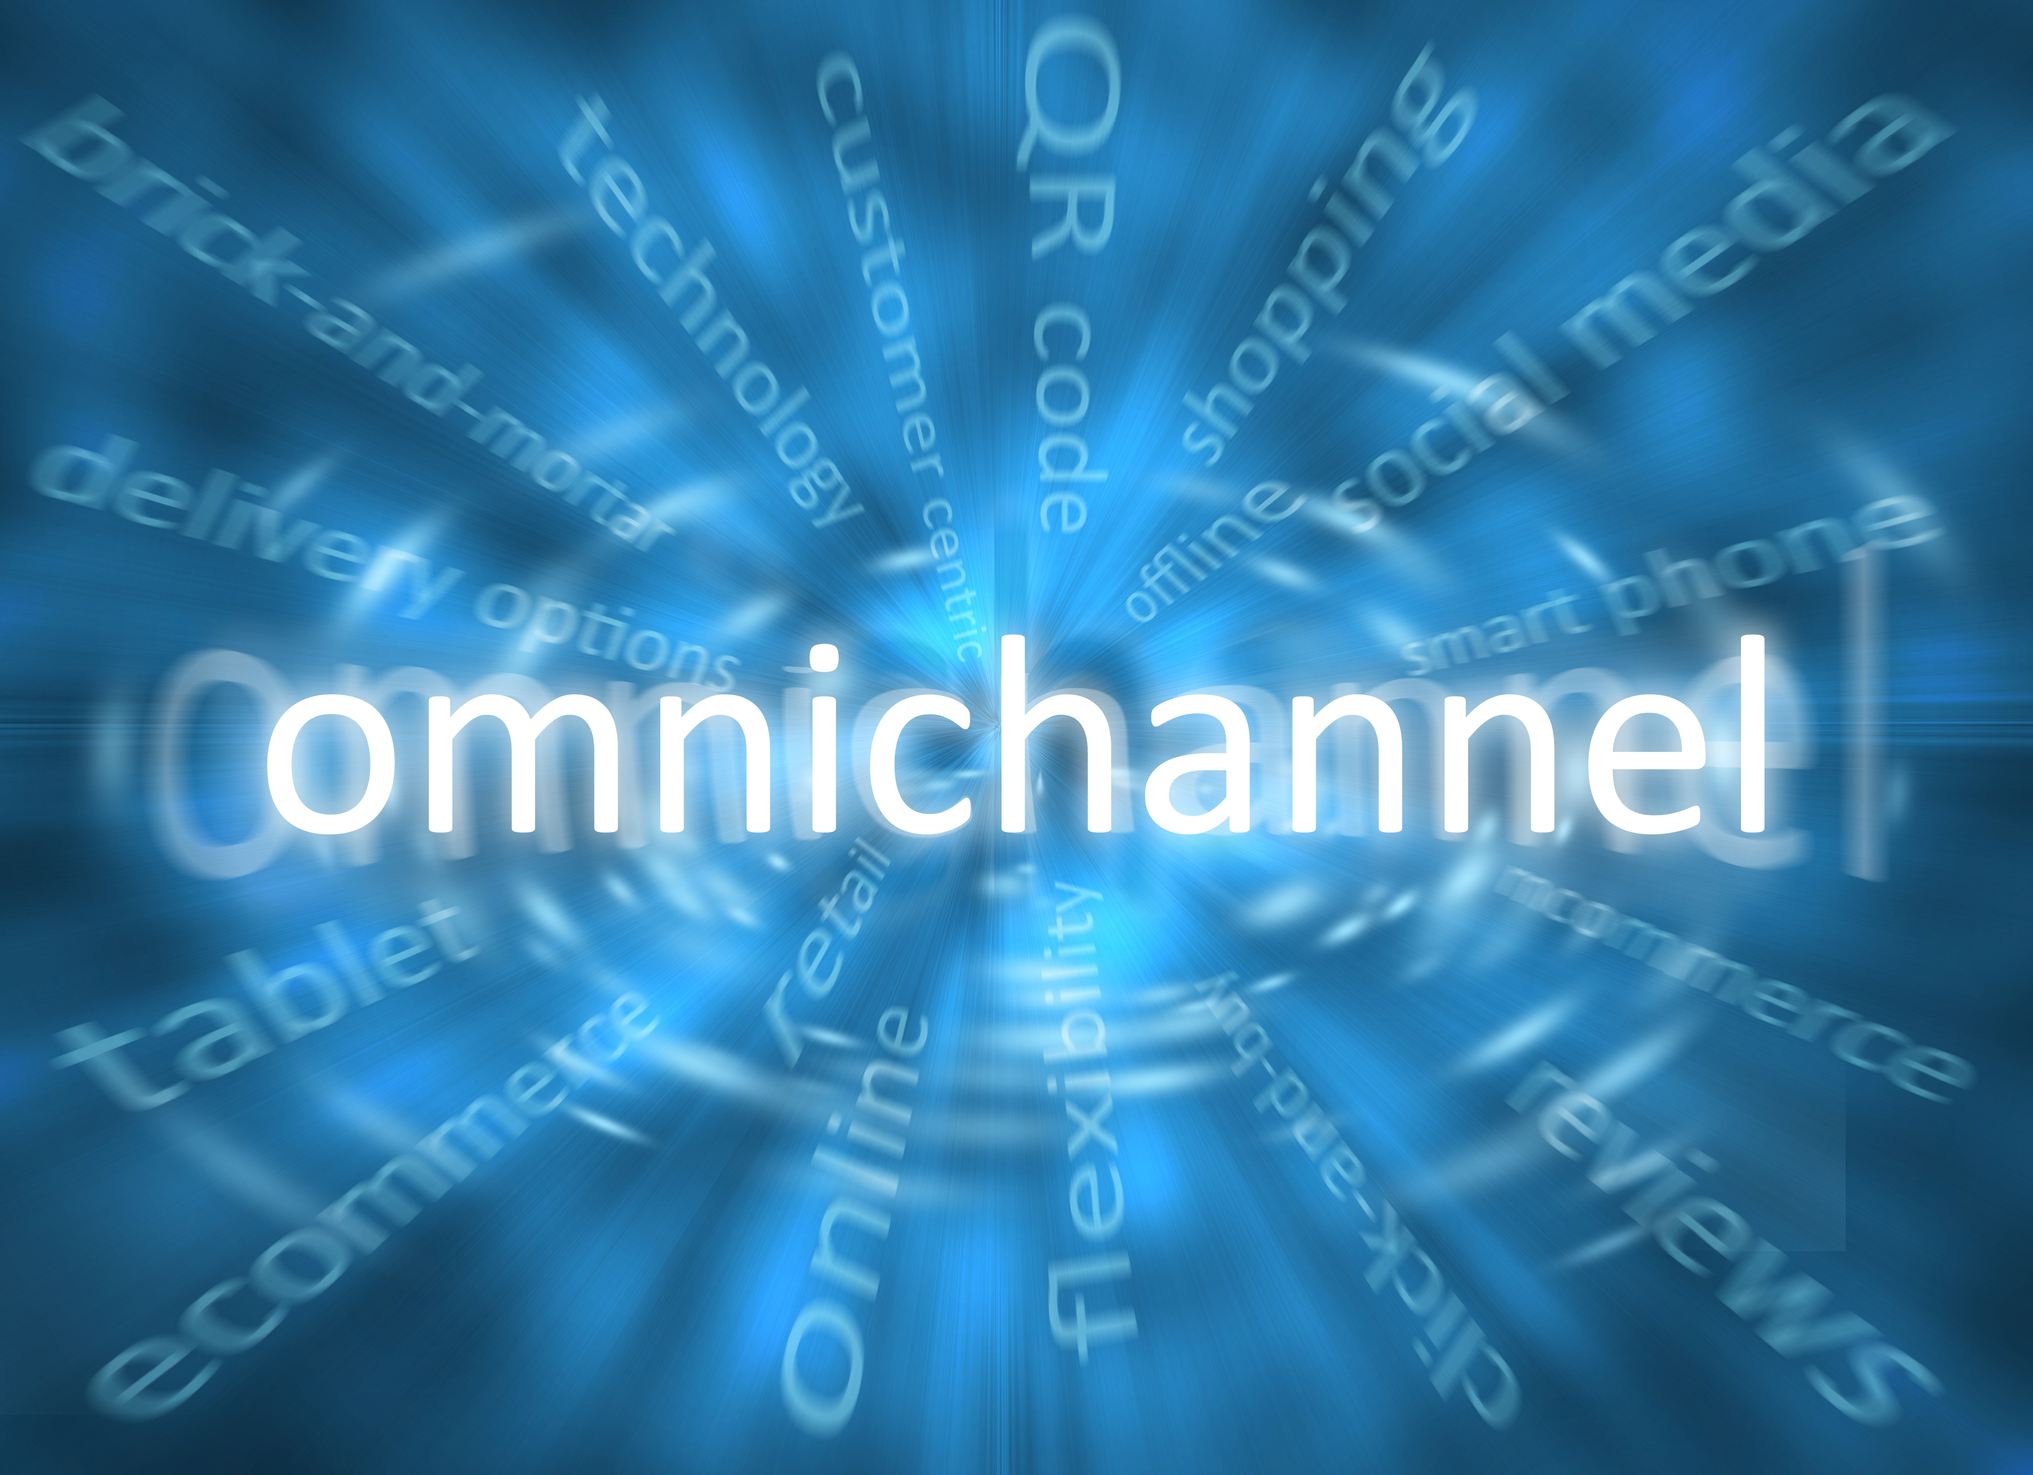 An omnichannel strategy can help make businesses stronger.